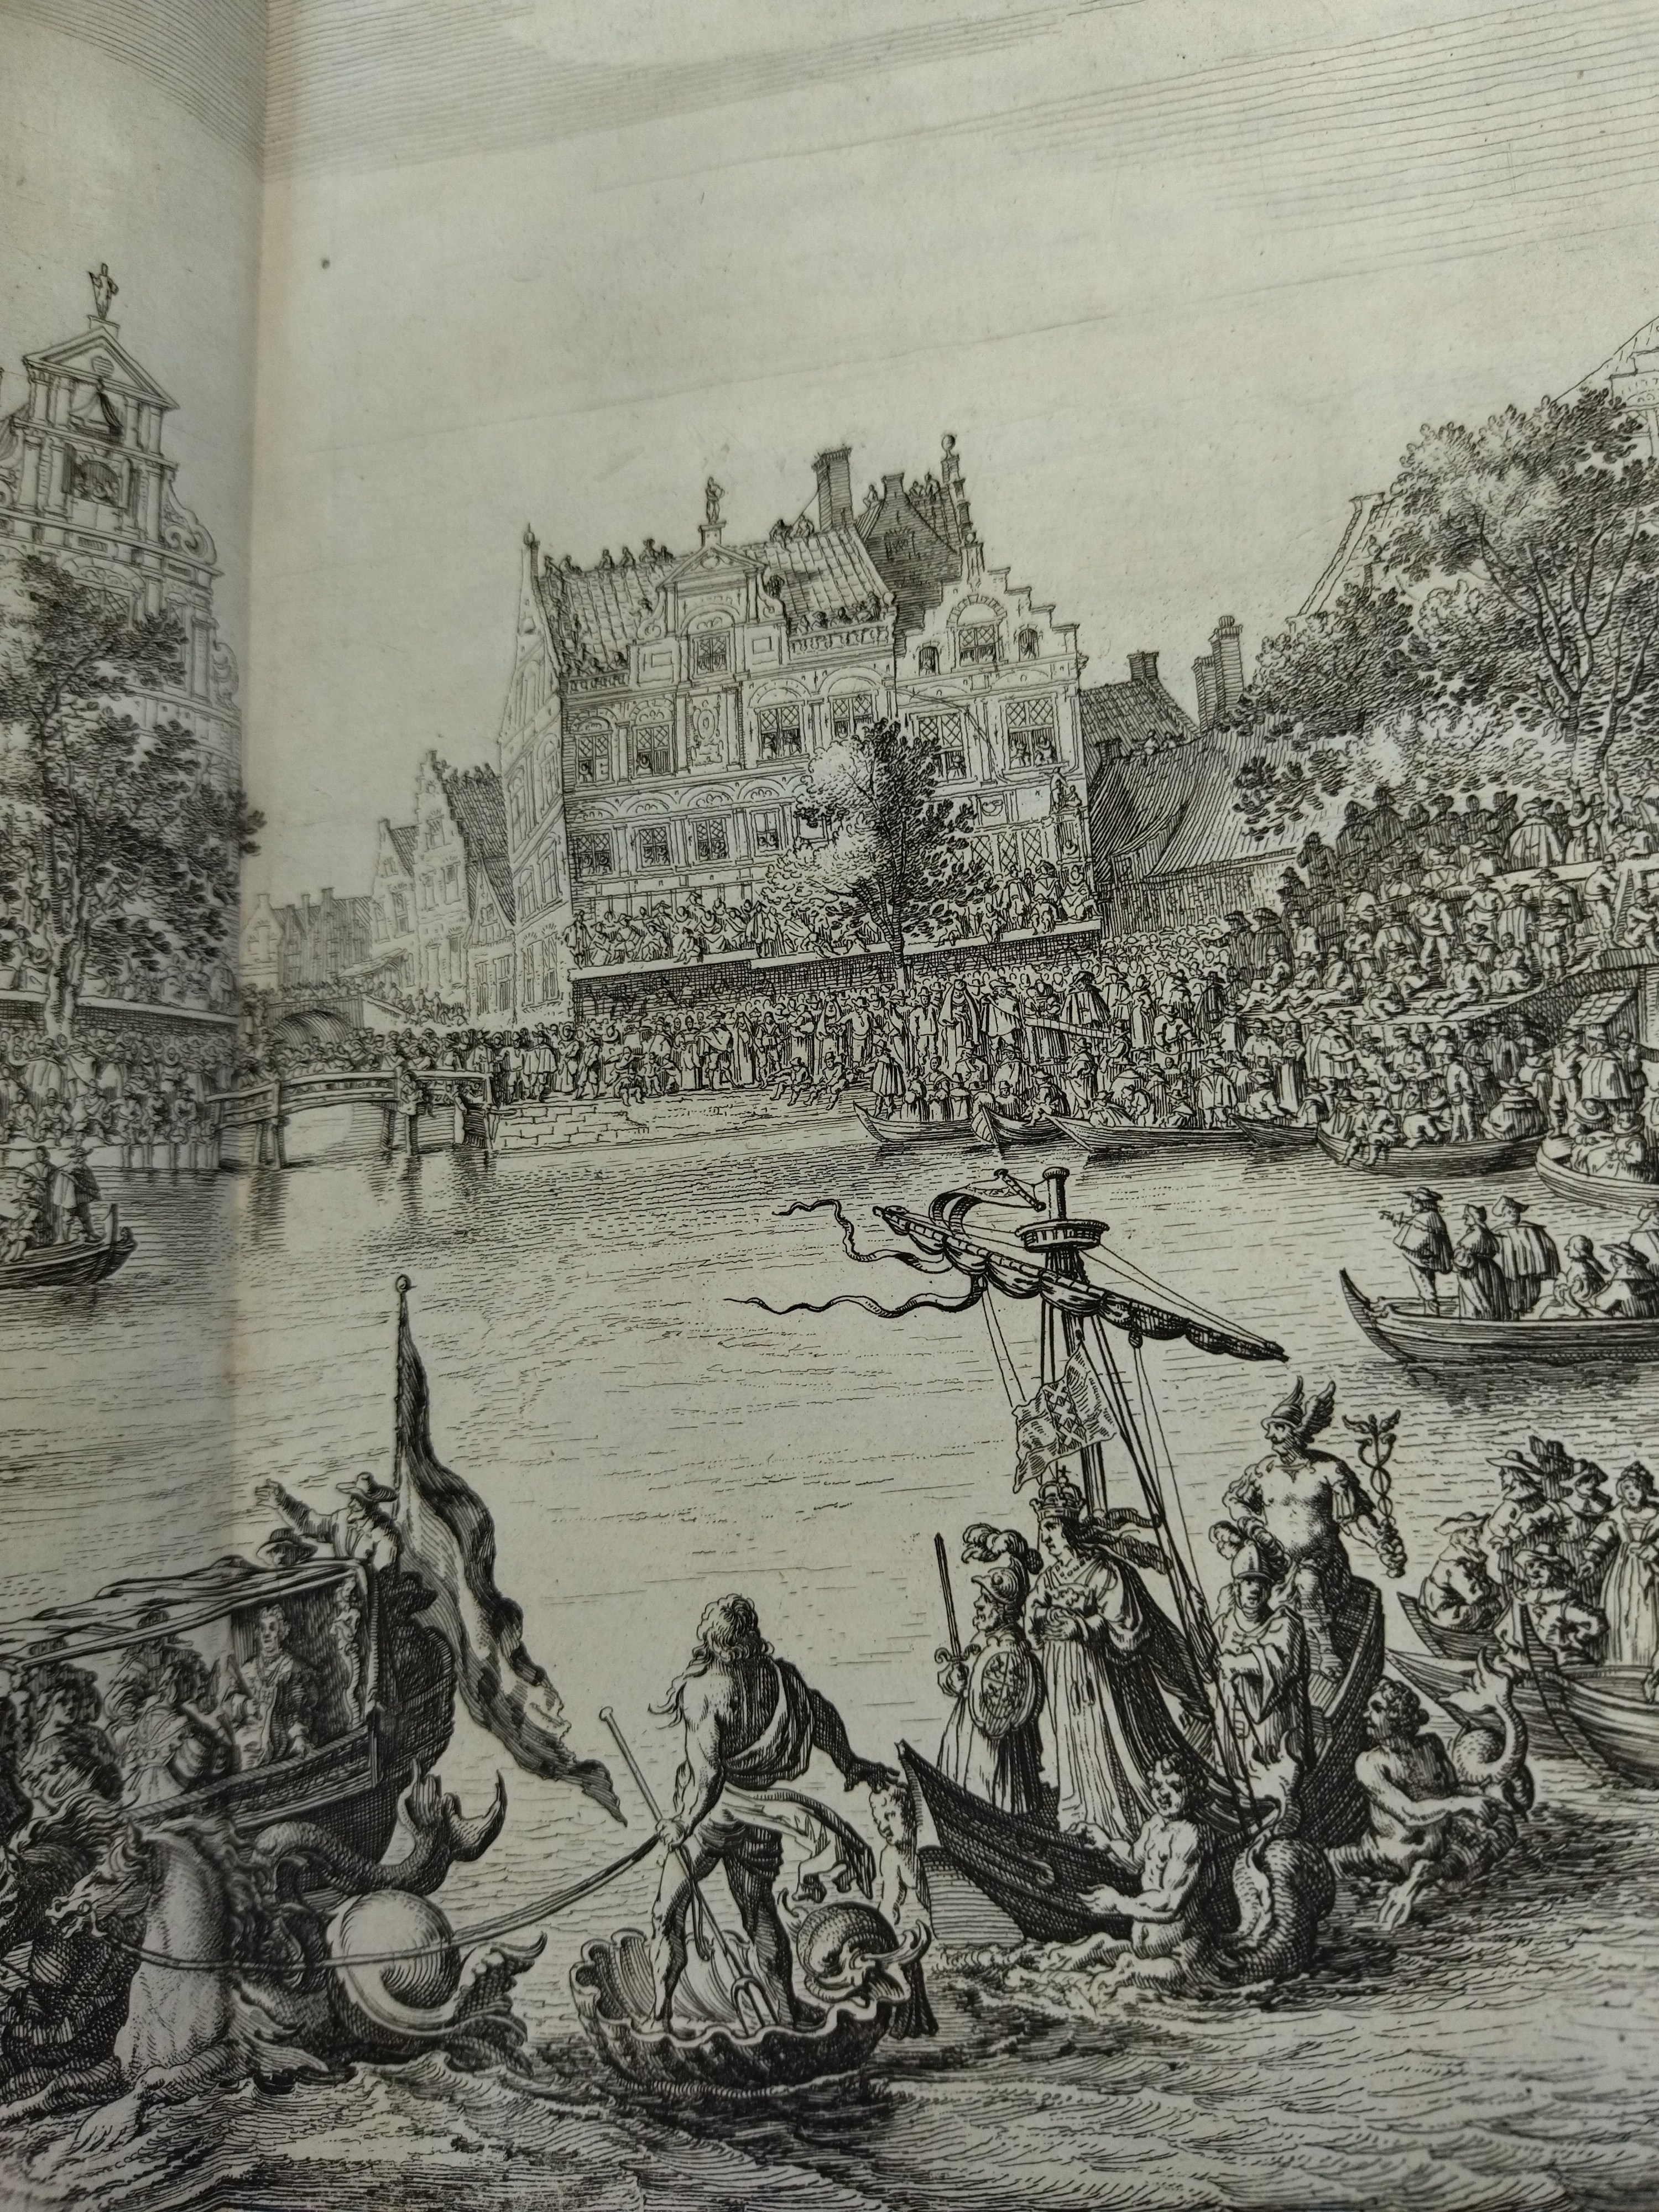 Fig 5 Neptune Mercury and the water goddesses on the Amstel Salomon Savery after Simon Jacobsz de Vlieger Etching Detail from plate 6 in Caspar Barlaeus Blyde inkomst der Maria de Medicis t Amsterda